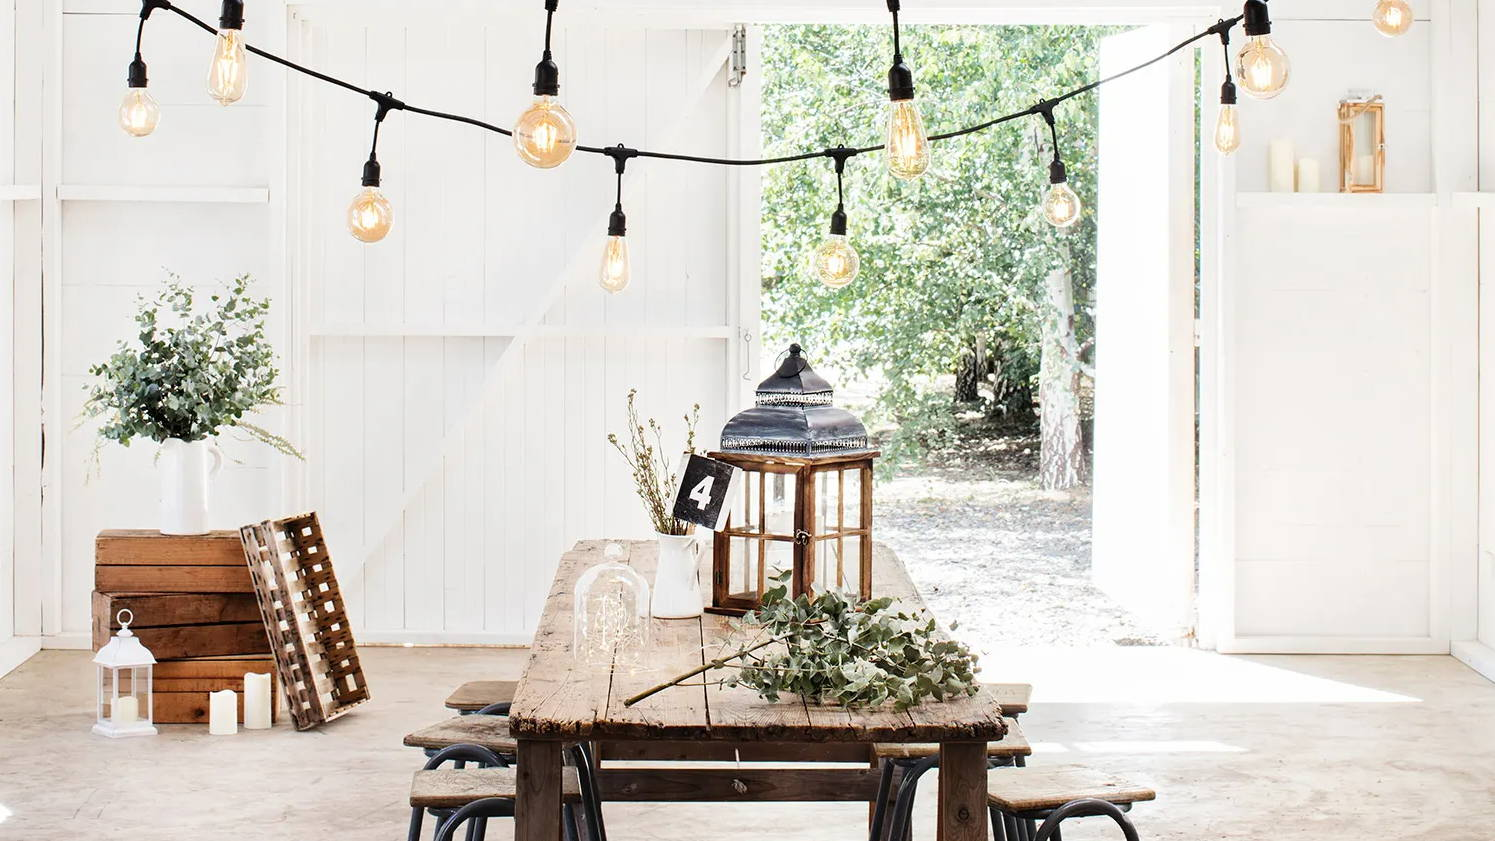 Barn setting with wooden lantern placed on table with green foliage and candles